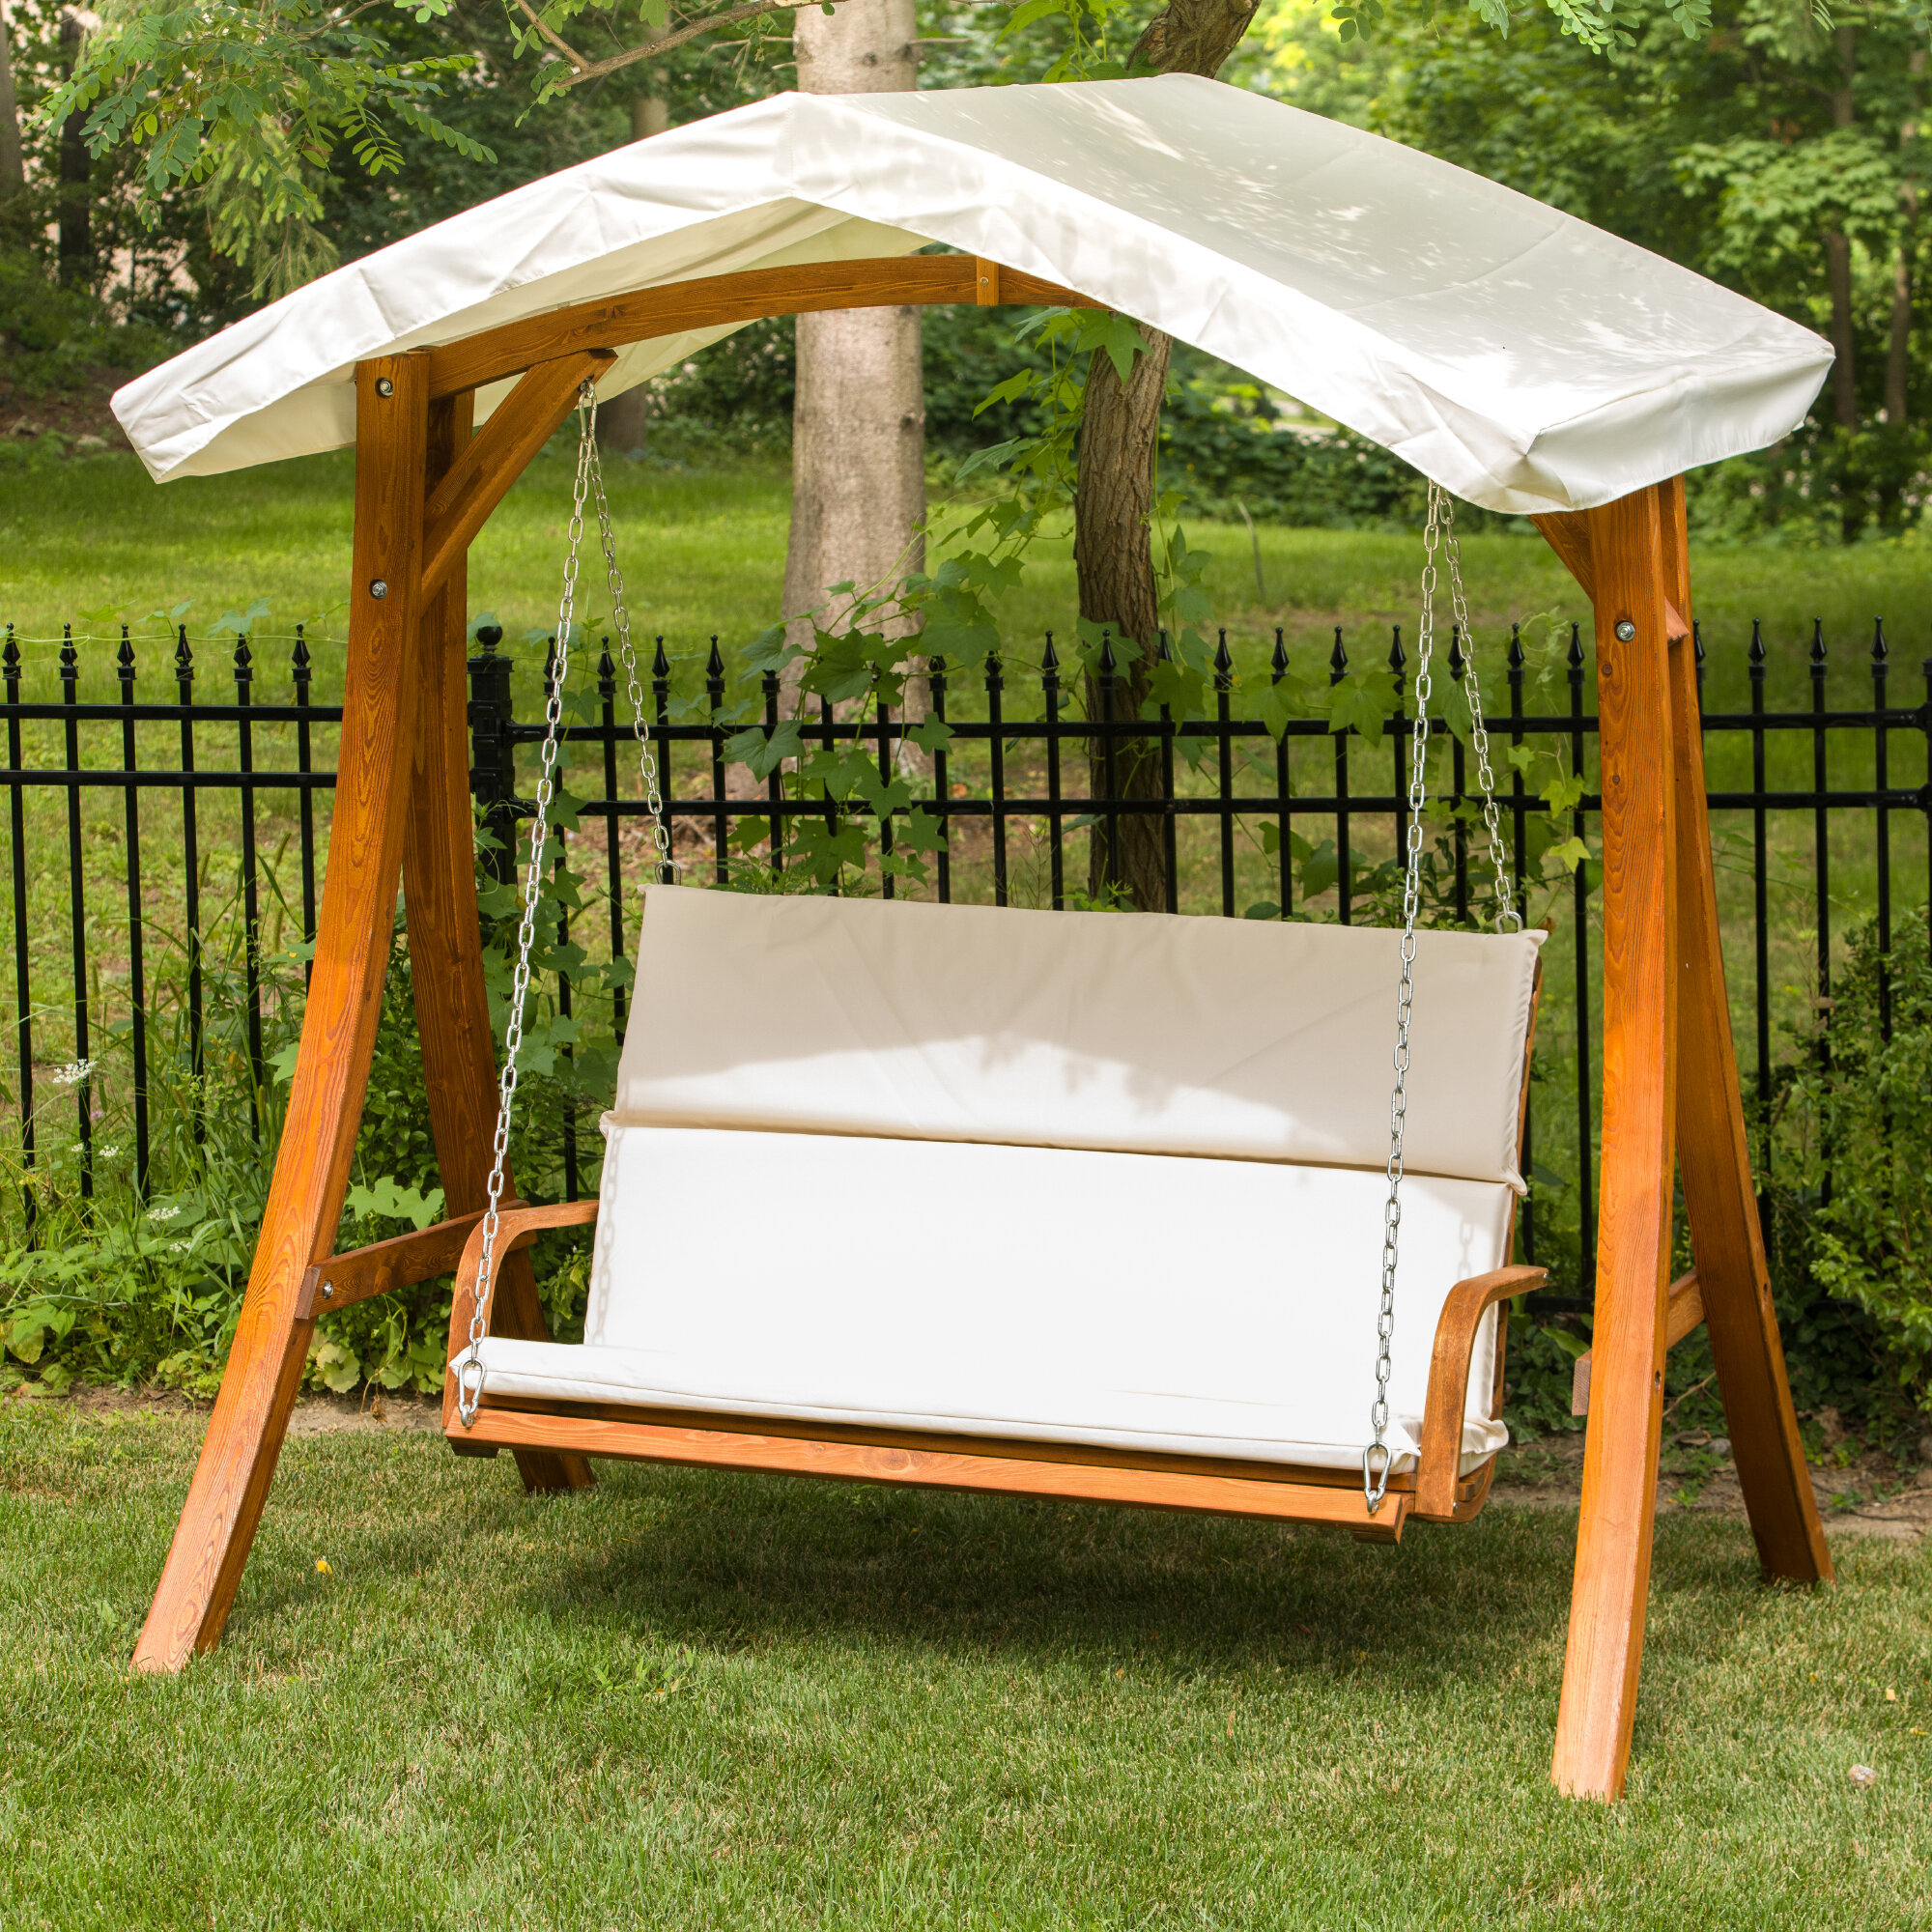 Porch Swing With Canopy Intended For Canopy Porch Swings (Image 19 of 25)